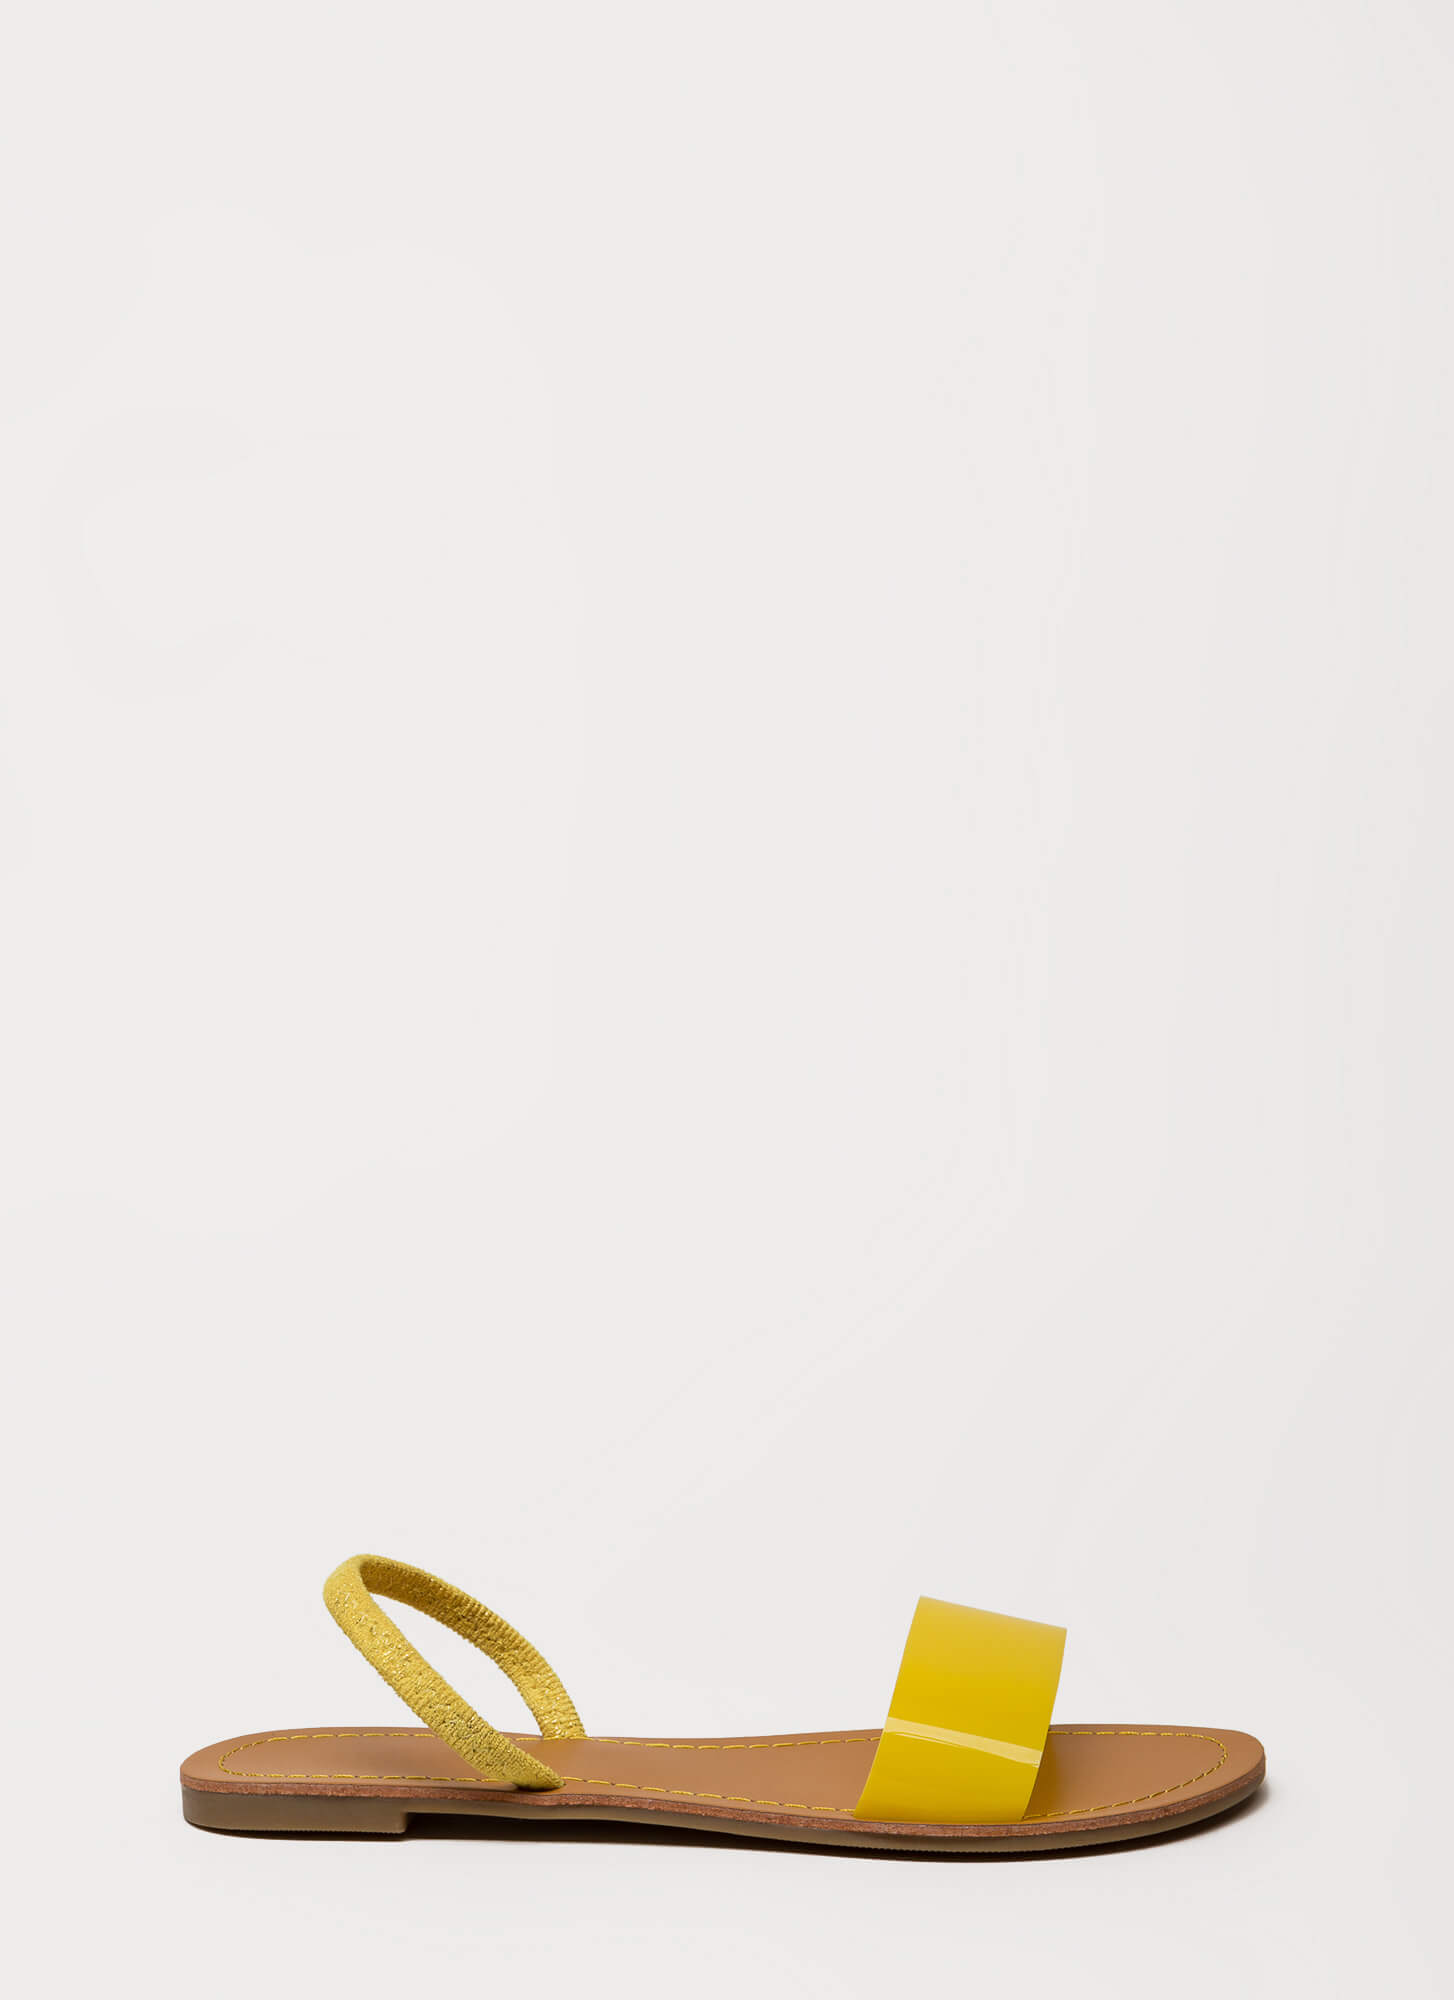 Playtime PVC Strap Slingback Sandals YELLOW